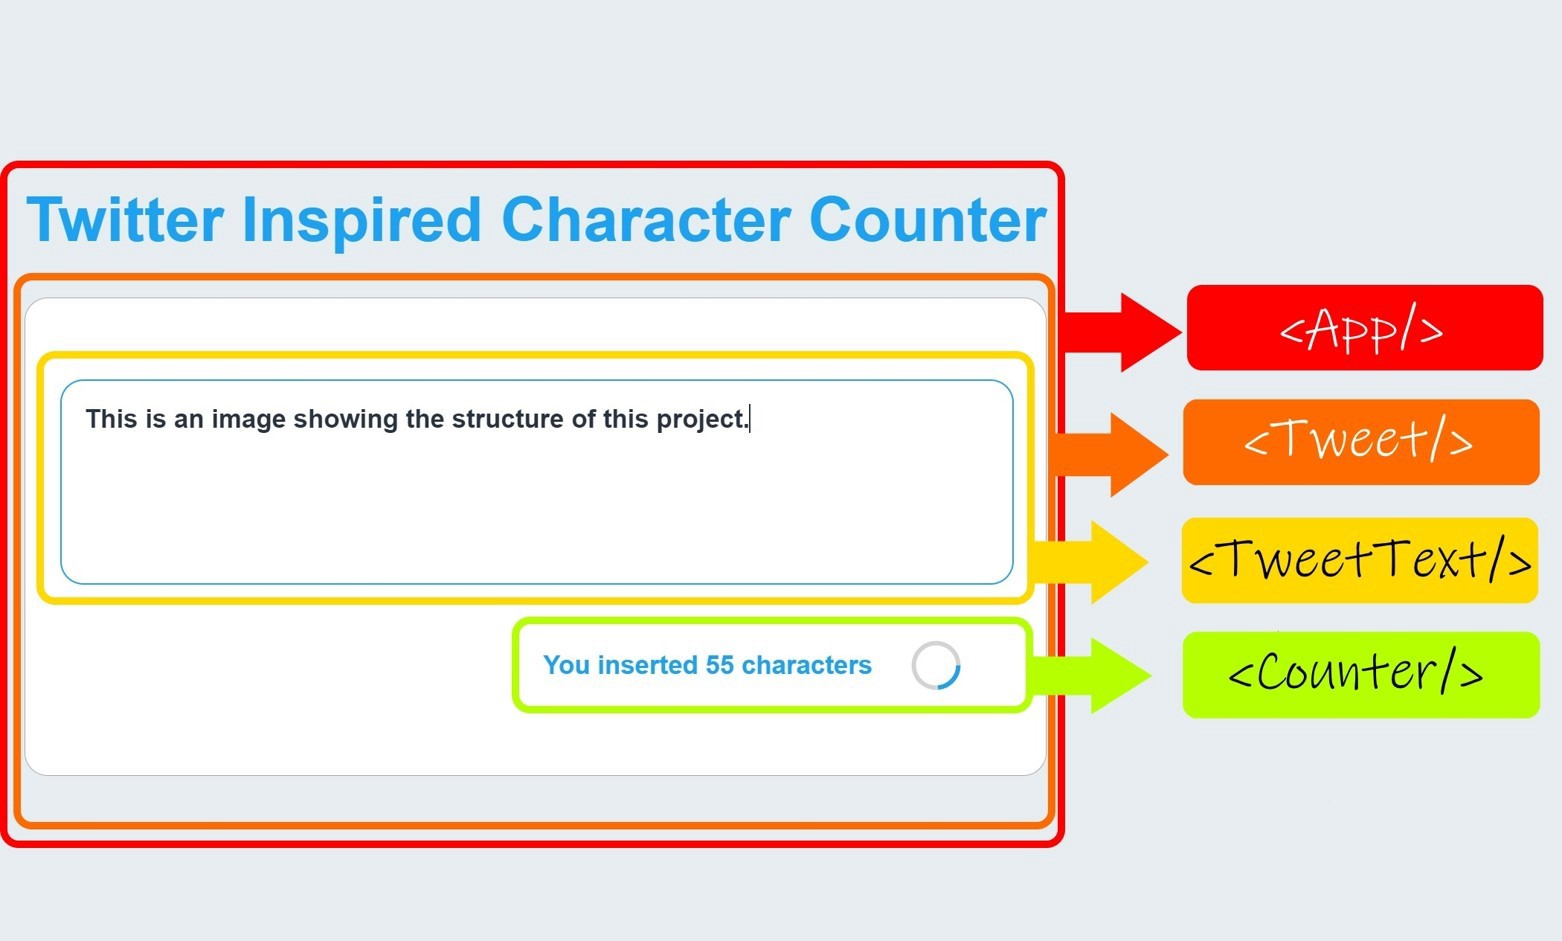 How to create a Twitter Inspired Character Counter with an